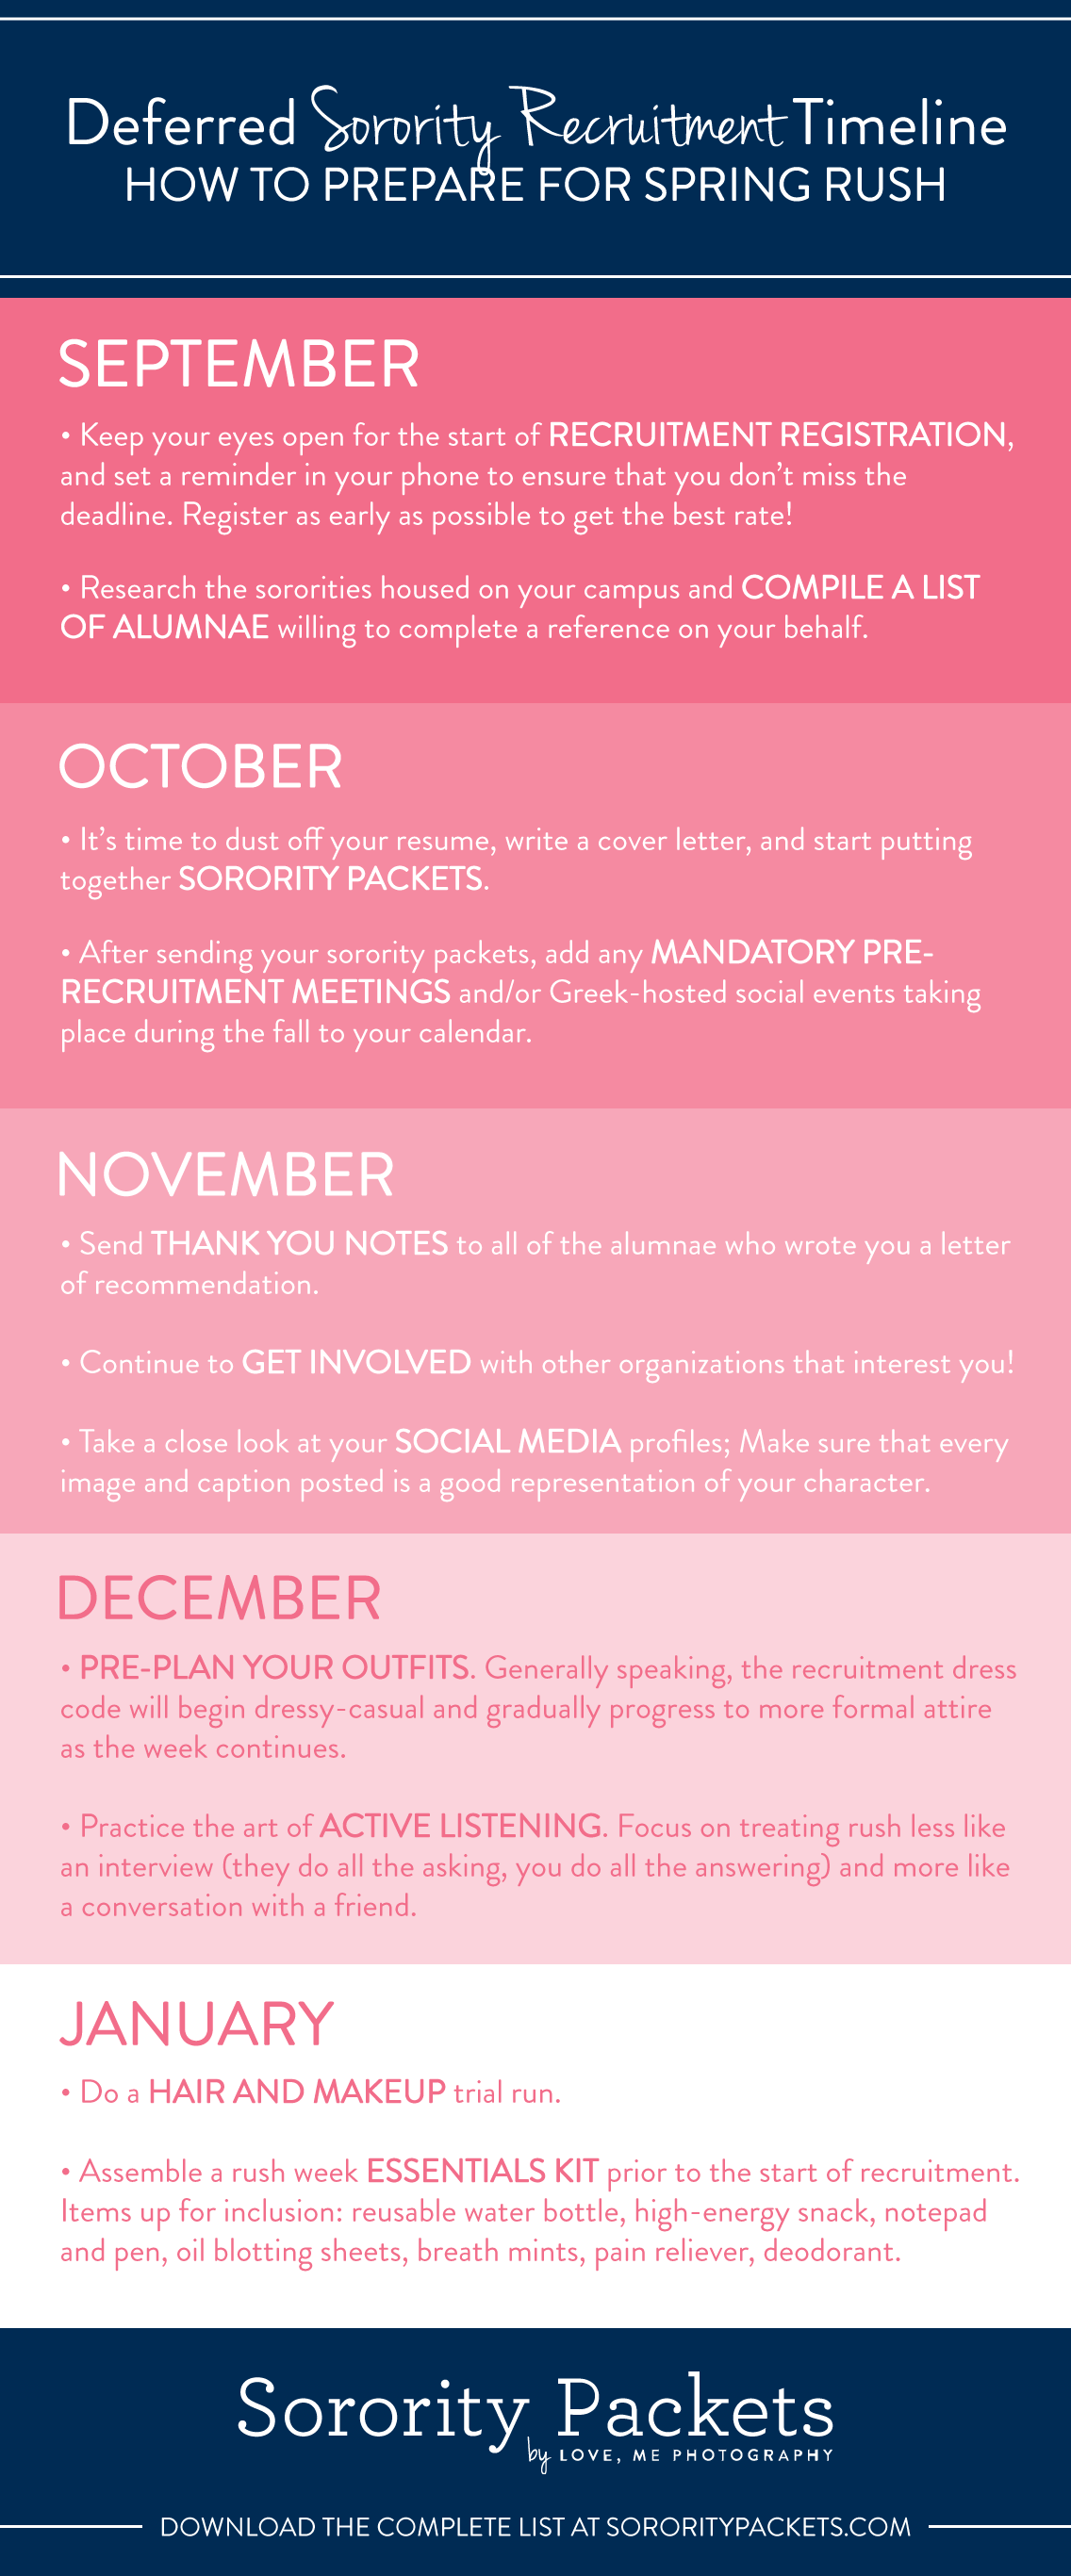 Lets talk about deferred recruitment spring rush prep timeline spring rush prep timeline more information about deferred recruitment rush week conversation tips outfit ideas and advice from current sorority fandeluxe Images